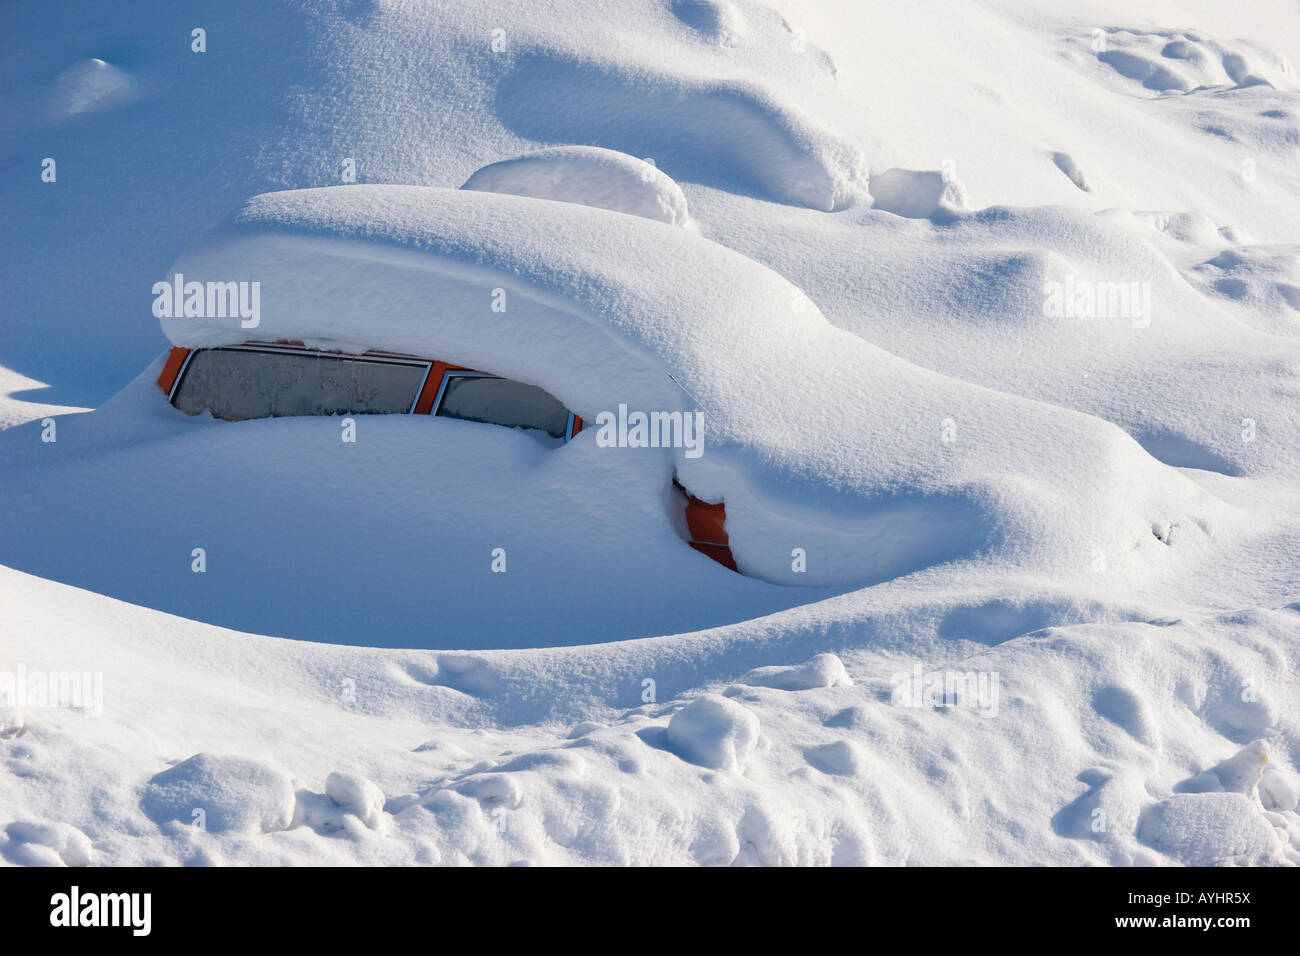 A car is stuck in the snow - Stock Image